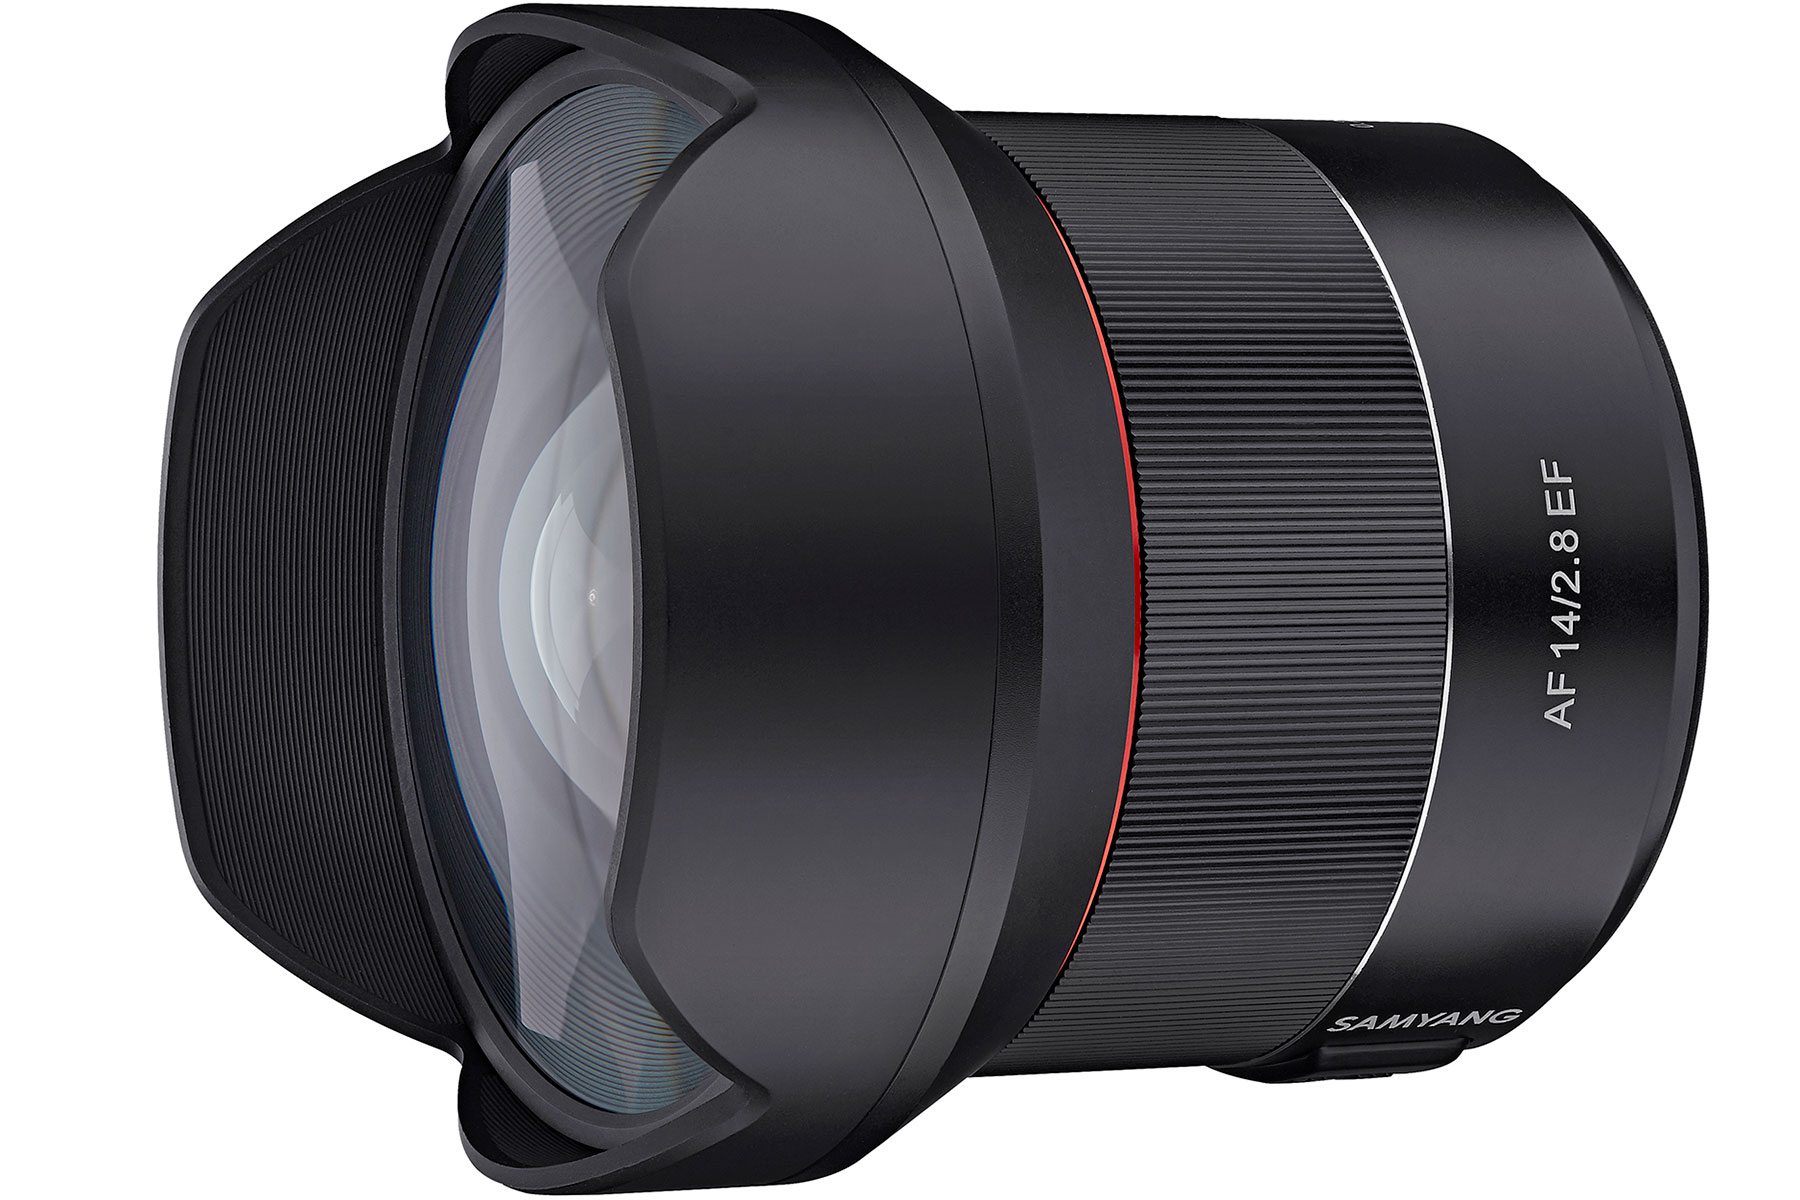 Samyang AF 14mm F2.8 EF for Canon full-frame DSLRs - Amateur ...